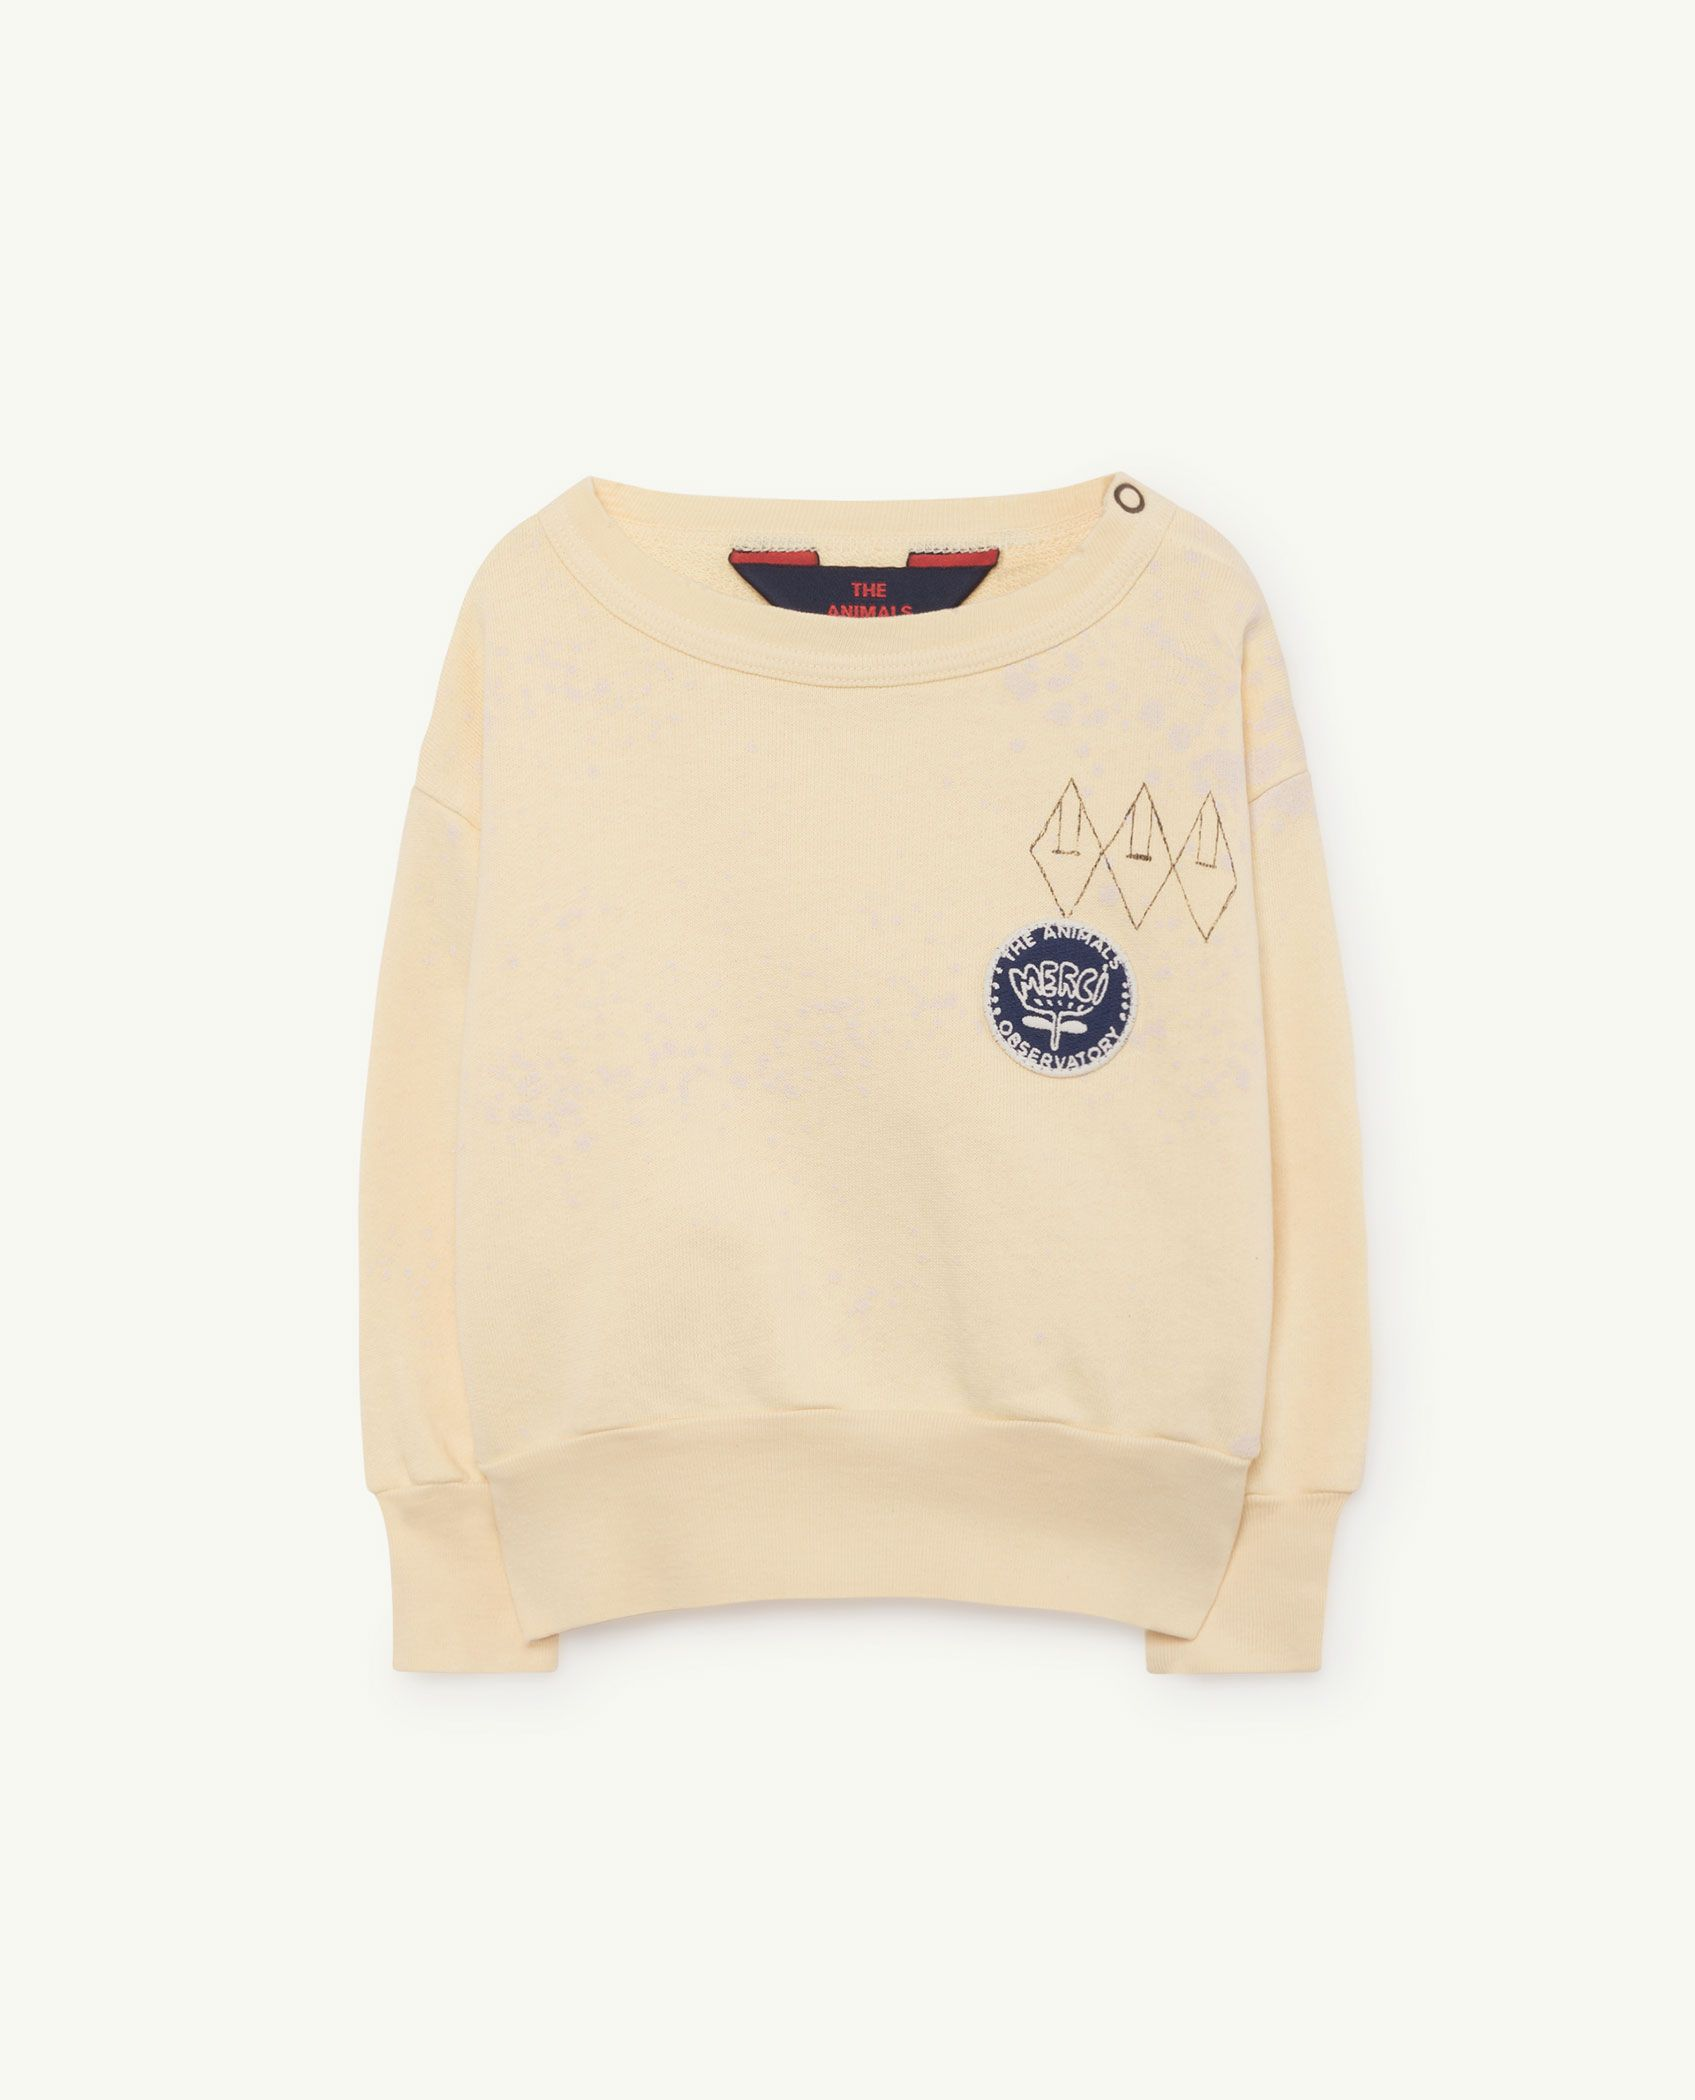 Yellow Splashes Bear Sweatshirt img-1